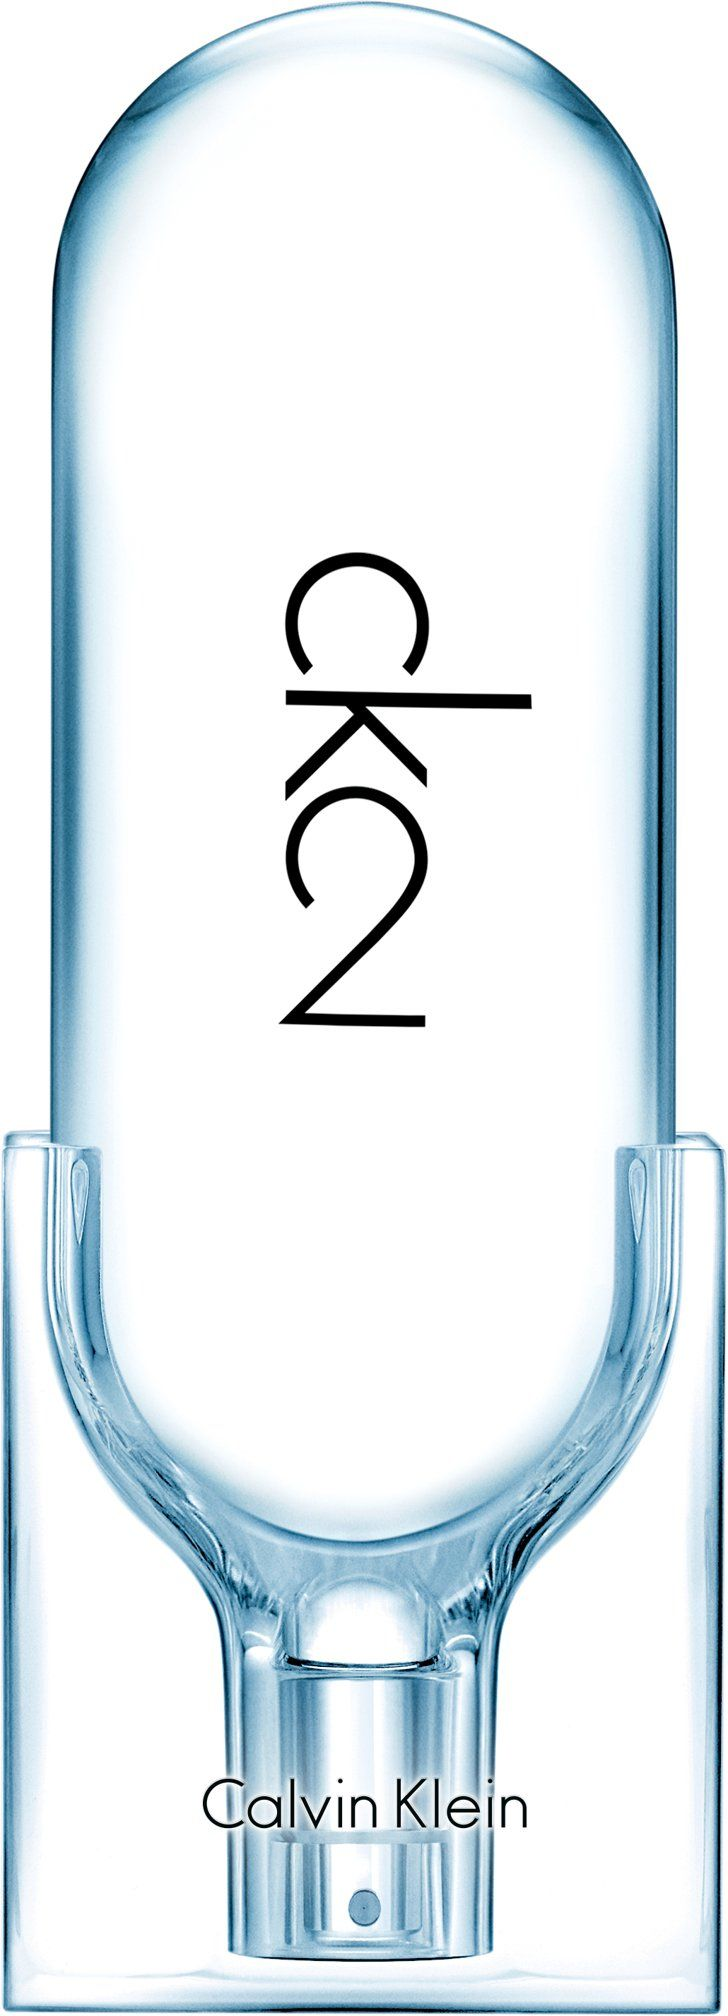 Pin for Later: 12 Intoxicating Unisex Fragrances That Make a Strong Case For Sharing Calvin Klein ck2 The scent: Calvin Klein ck2 ($75, presale) The notes: Wasabi, mandarin, and vetiver. Smells like: A spry jog on a rainy day in Spring.